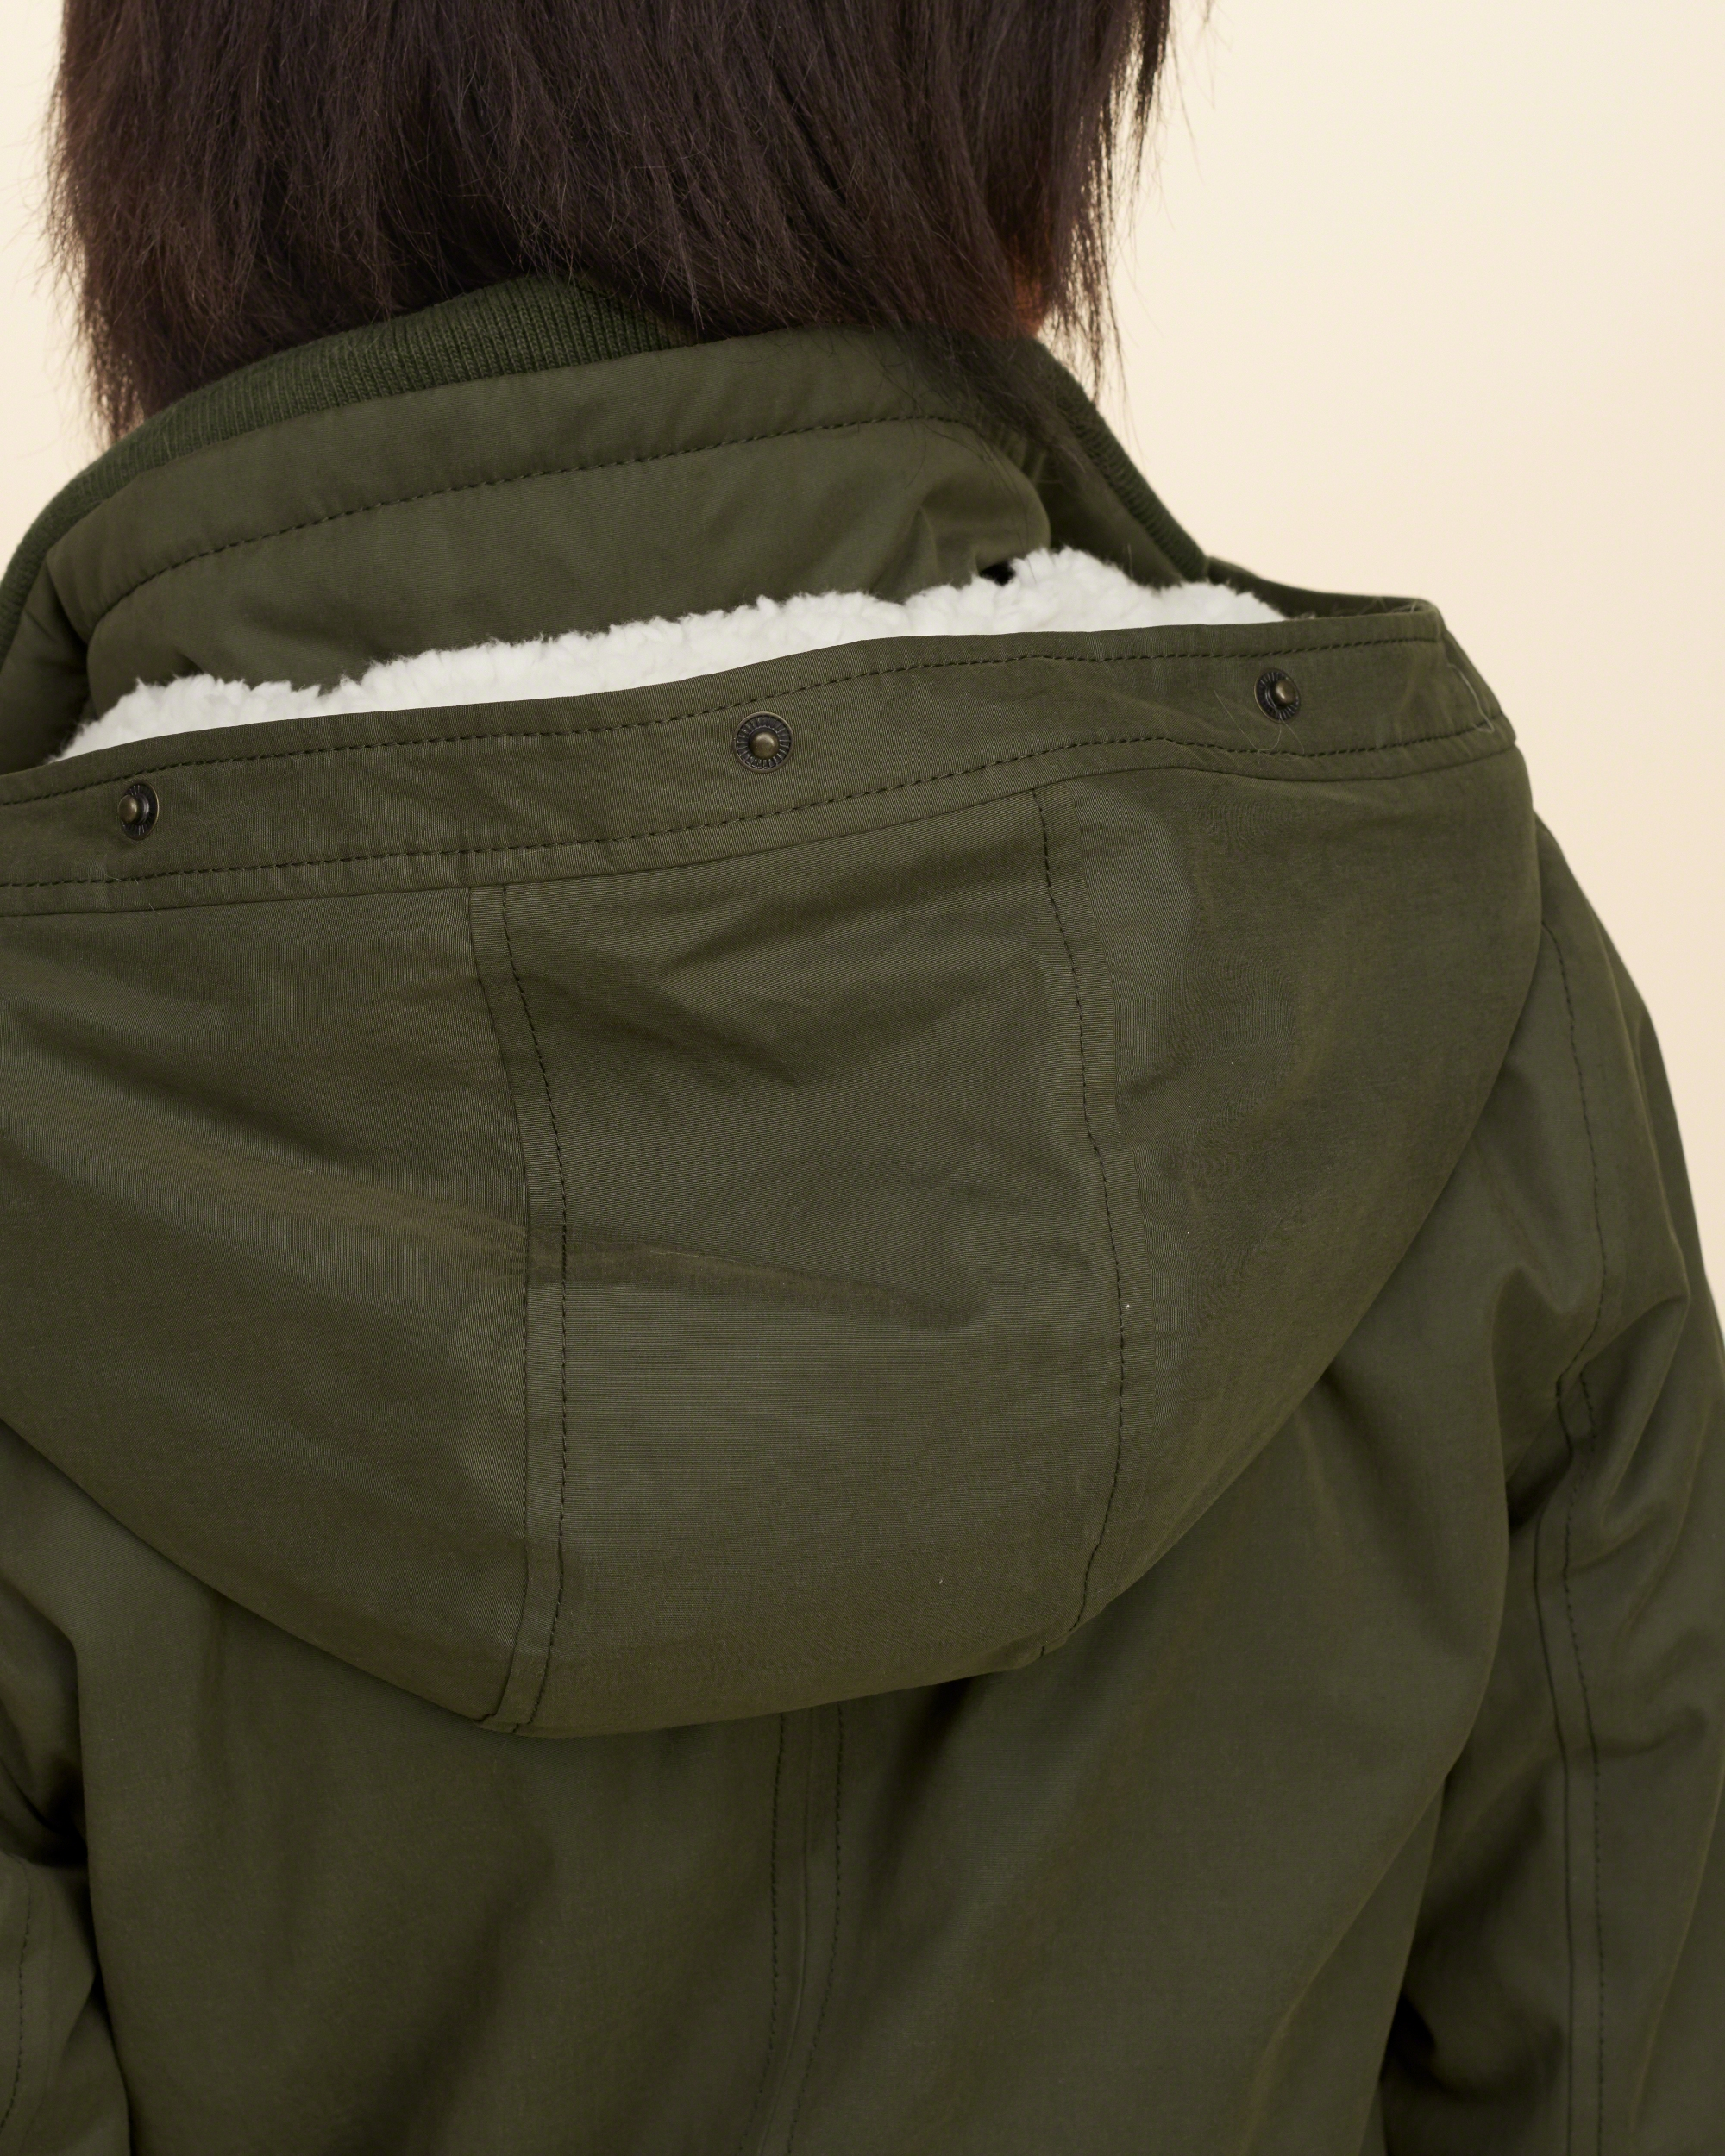 Hollister Sherpa Lined Parka in Olive dd (Green) - Lyst